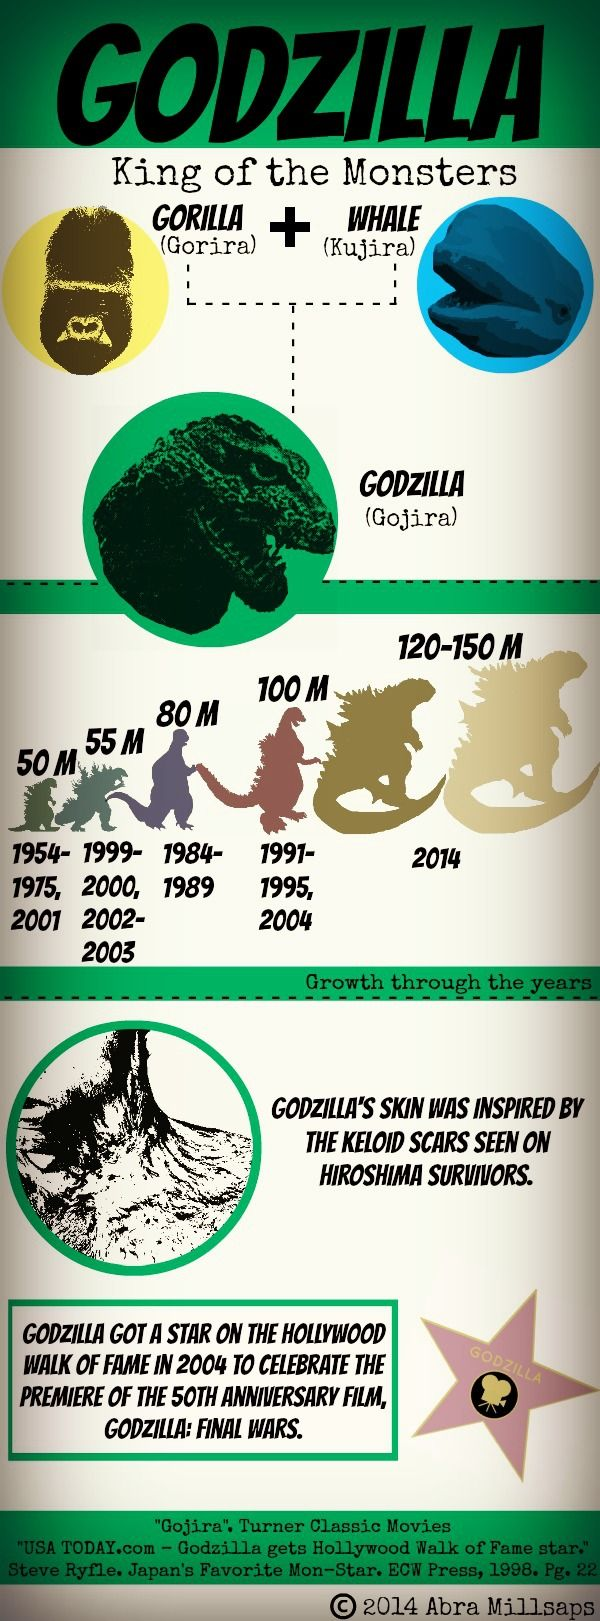 My first attempt at an infographic! Since the new Godzilla movie is coming out on May 16, 2014, an infographic with silly facts about everyone's favorite radioactive monster was in order. C 2014 Abra Millsaps